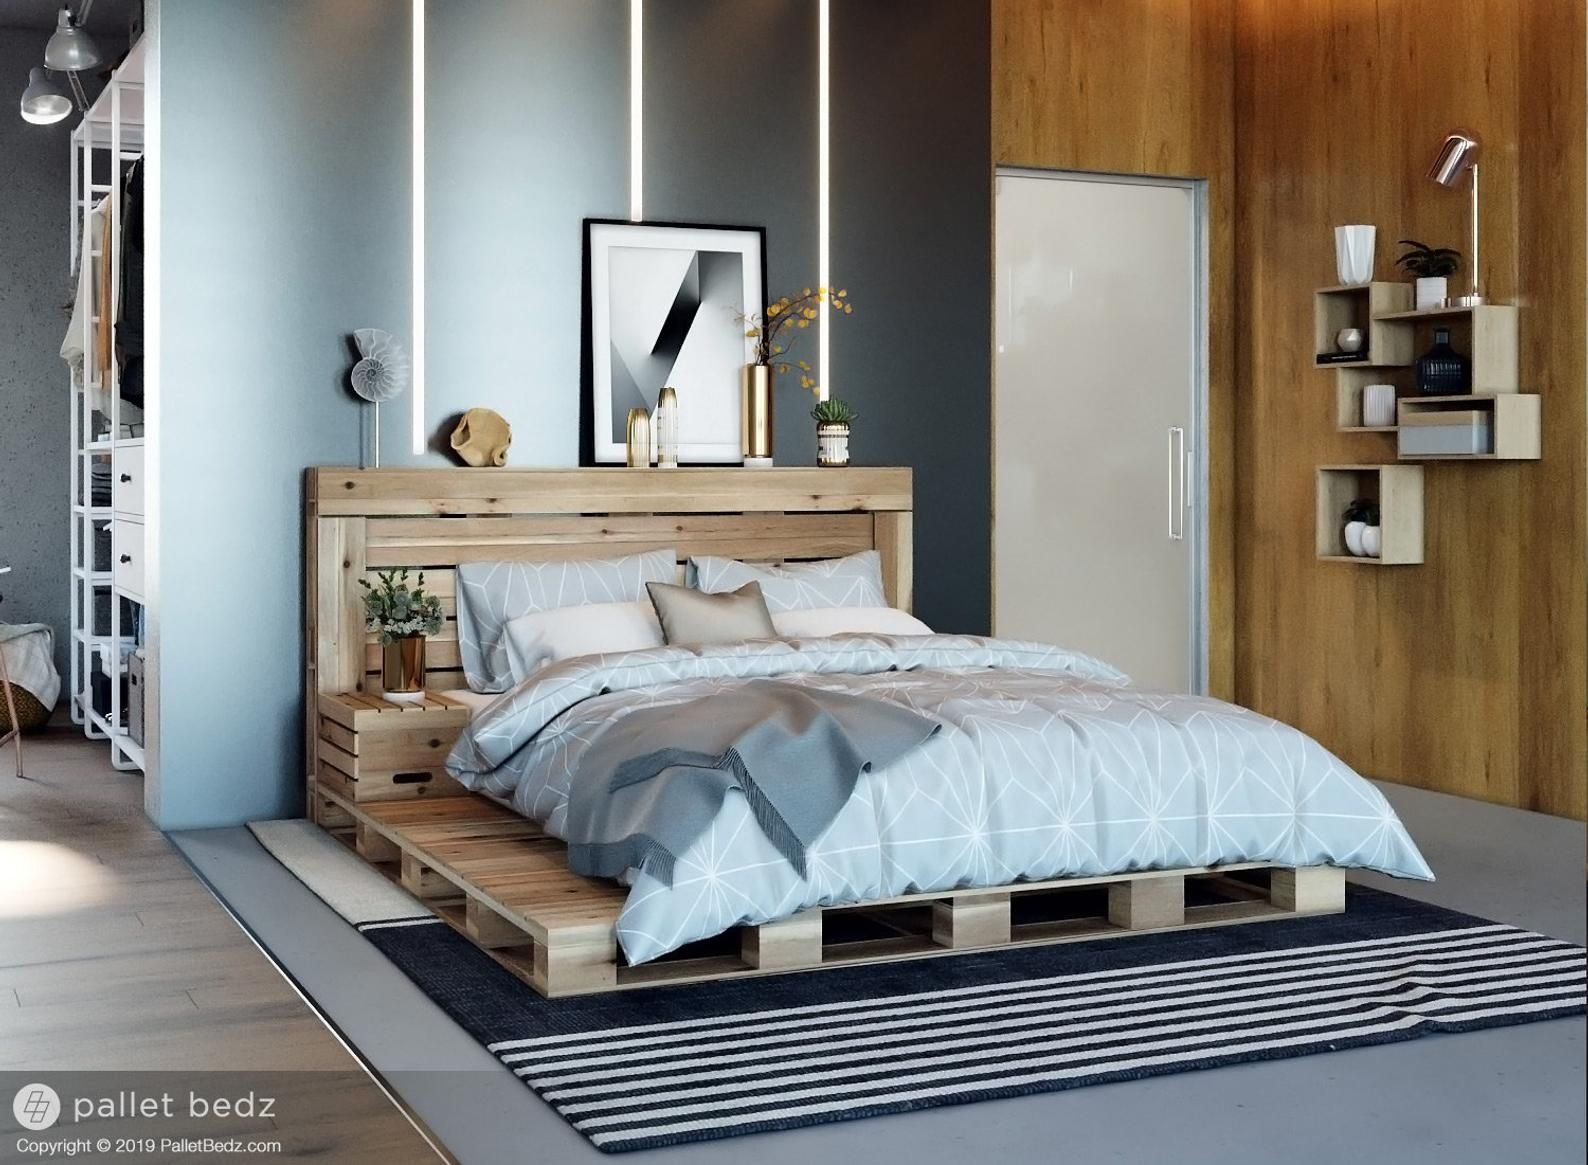 Pallet Bed The Oversized Queen Includes Headboard and